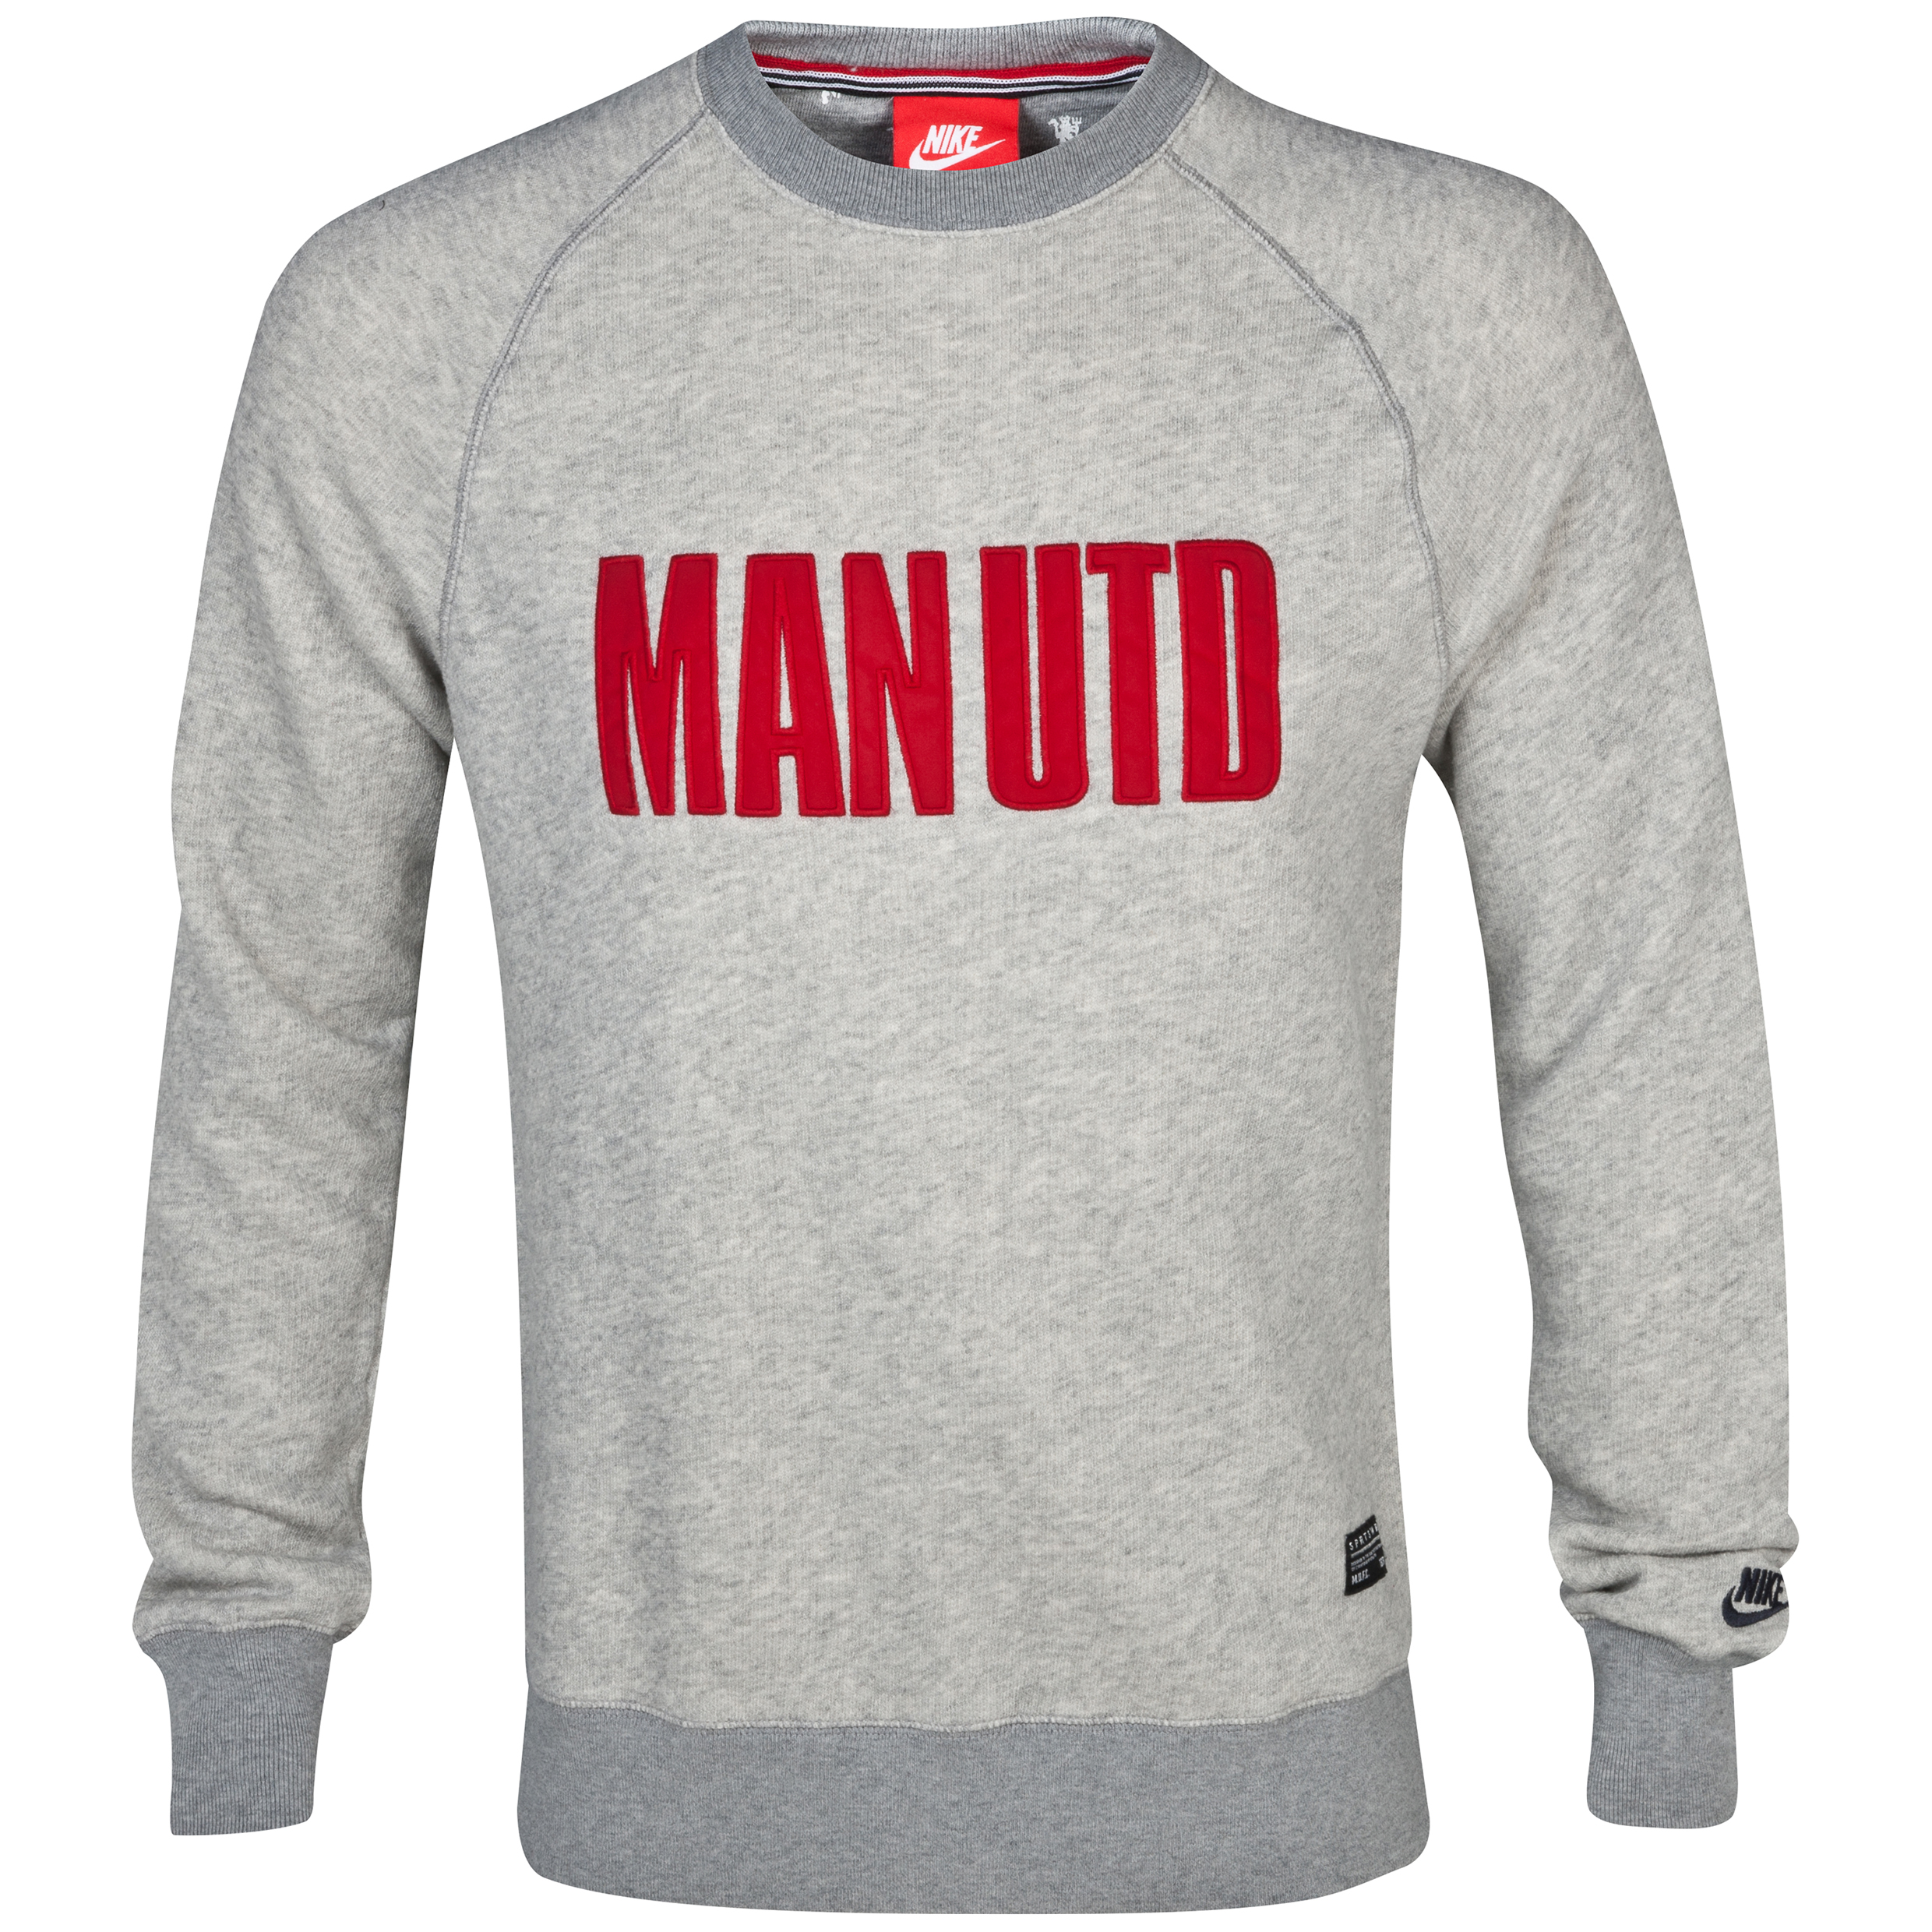 Manchester United Covert AW77 Crew Sweatshirt - Dark Grey Heather/Gym Red/Anthracite Dk Grey